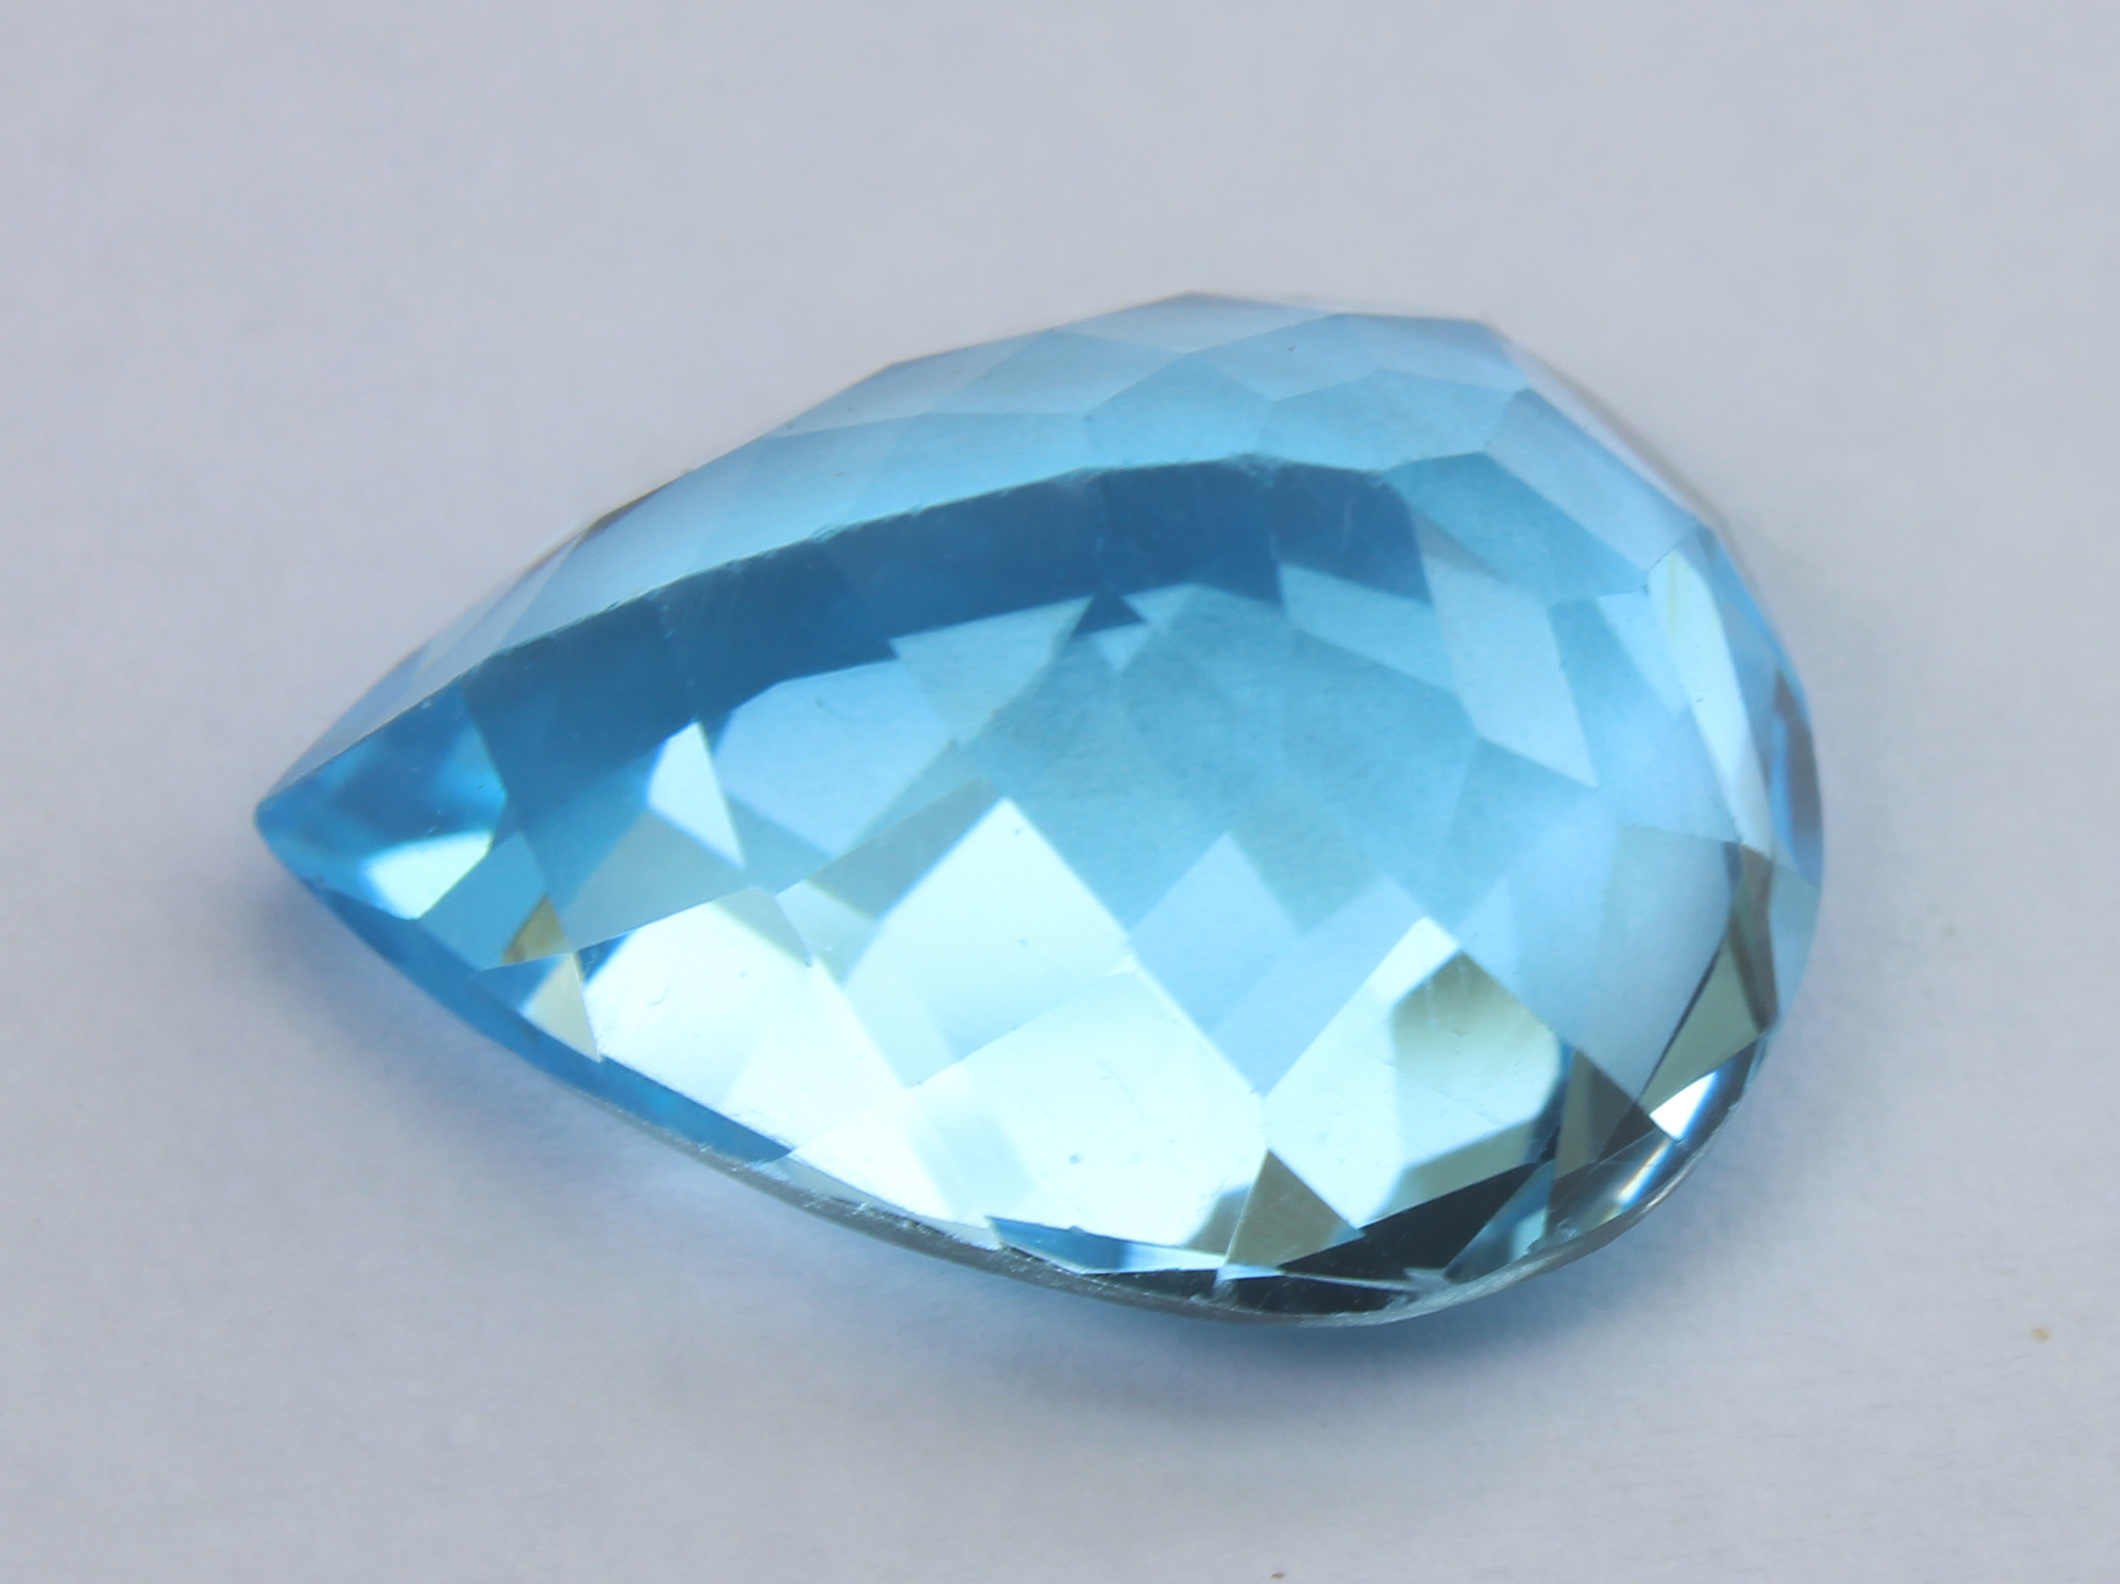 Blue Topaz 18.28 Ct - Image 5 of 6